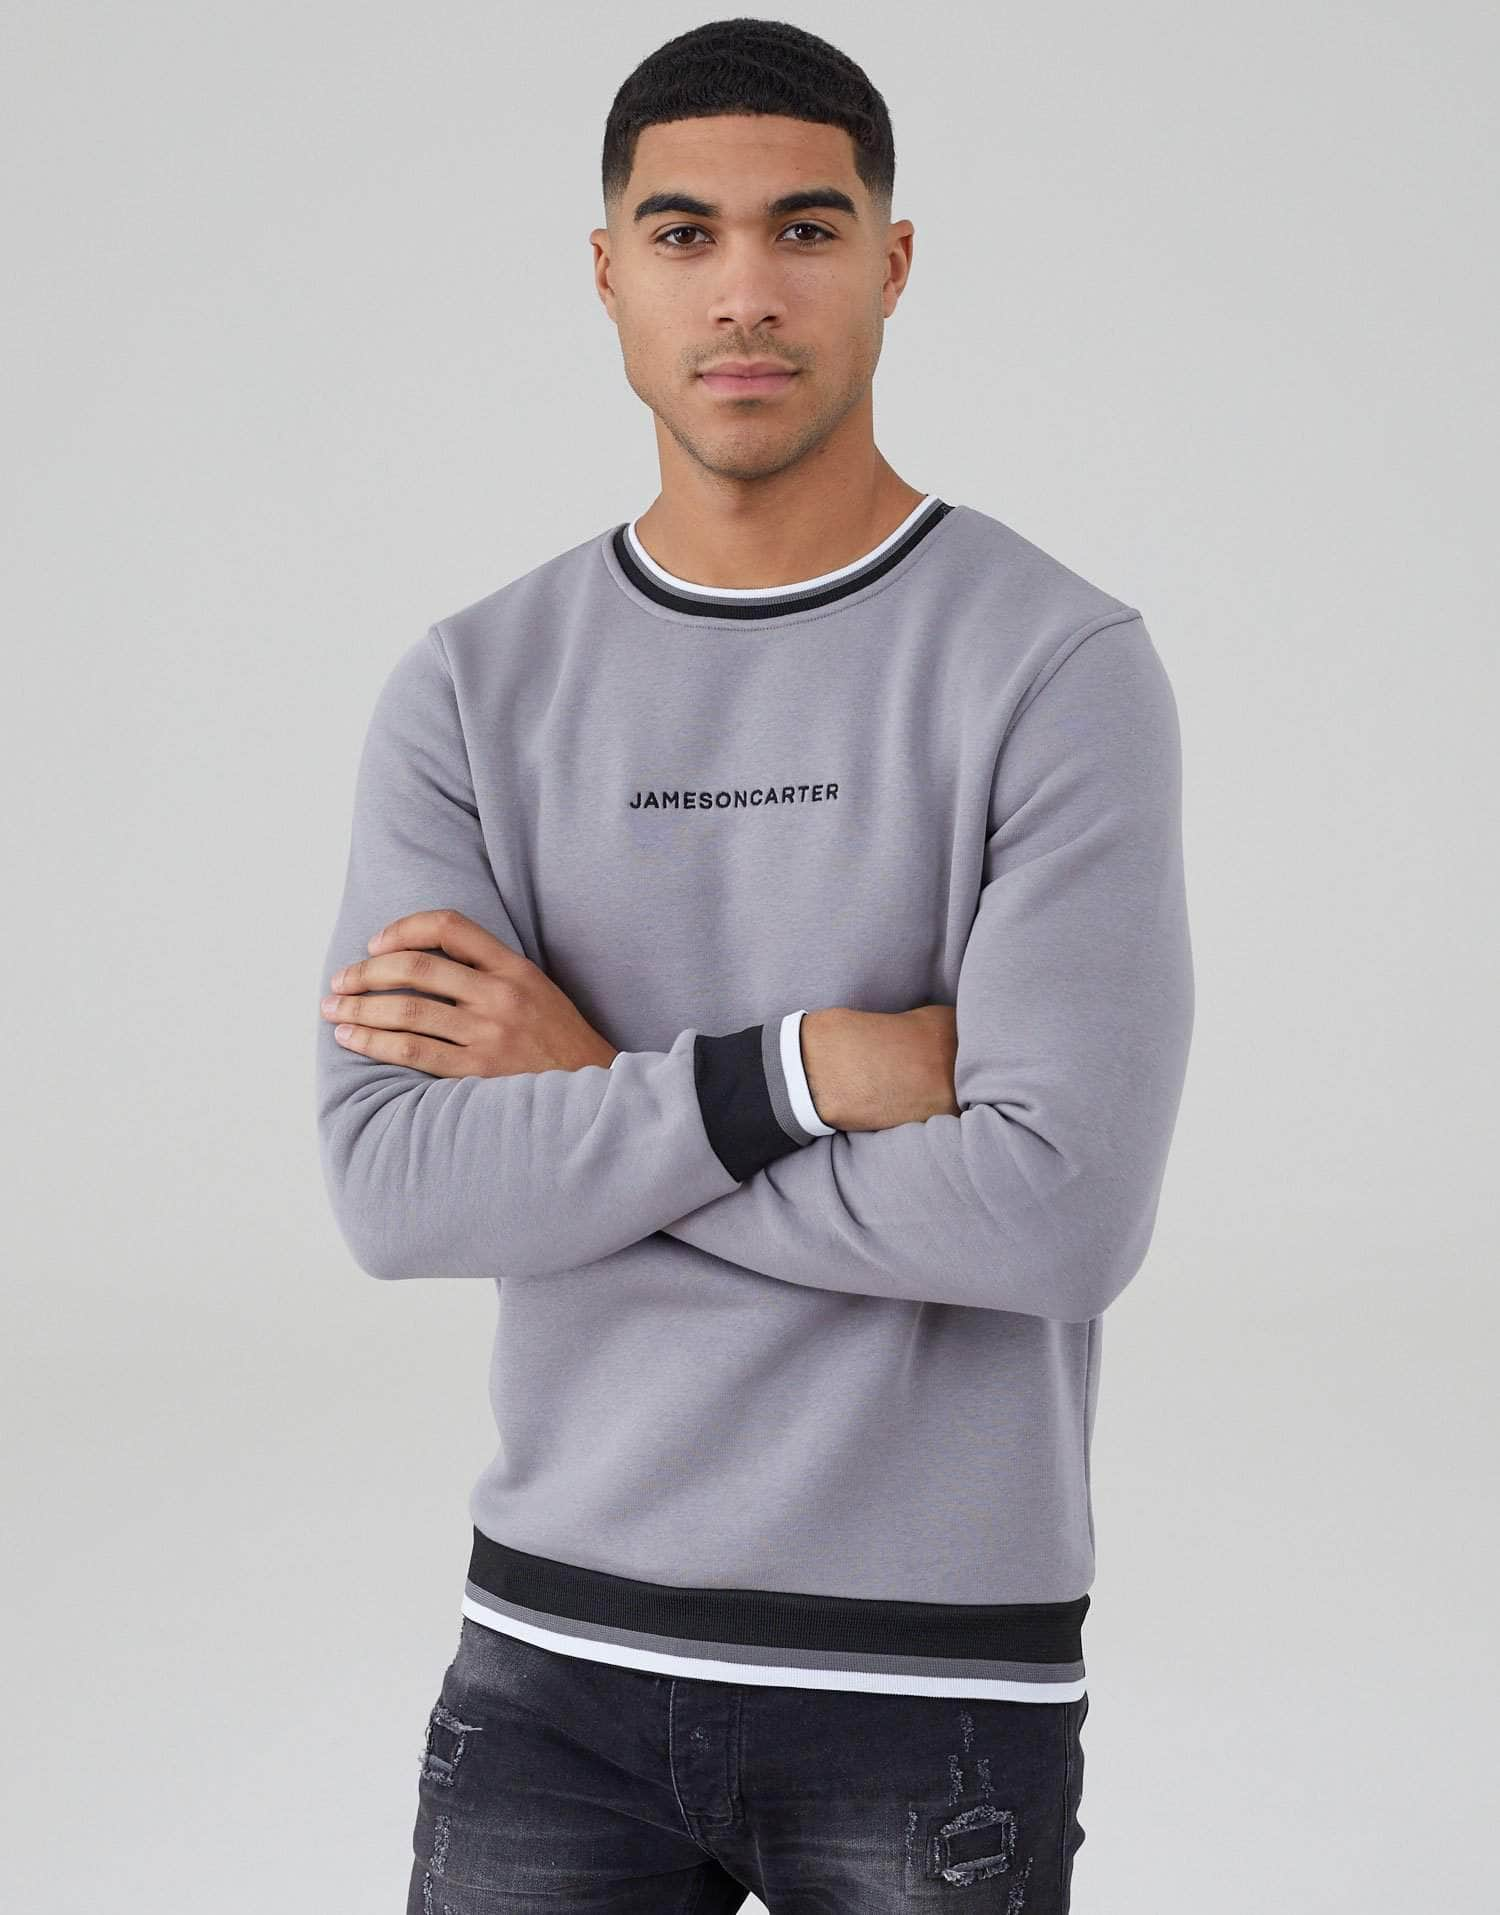 Jameson Carter Jumper, sale Jameson Carter Ringer Jumper - Silver